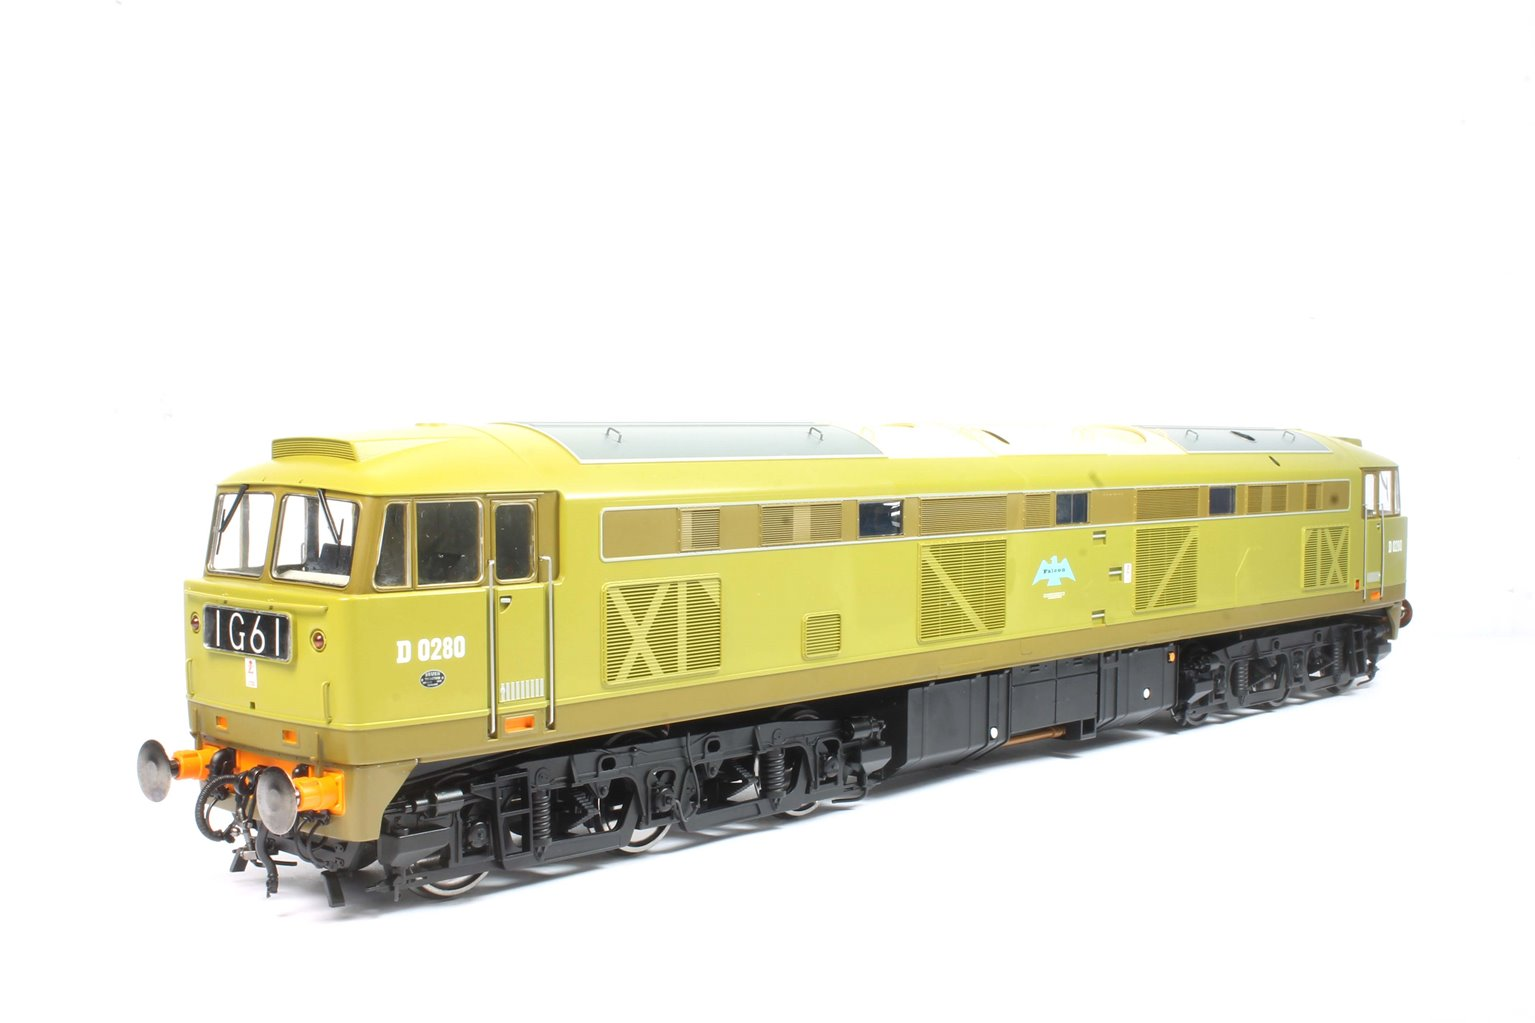 Class 53 D0280 FALCON in 'as-built' lime green and brown livery with original printed nameplates